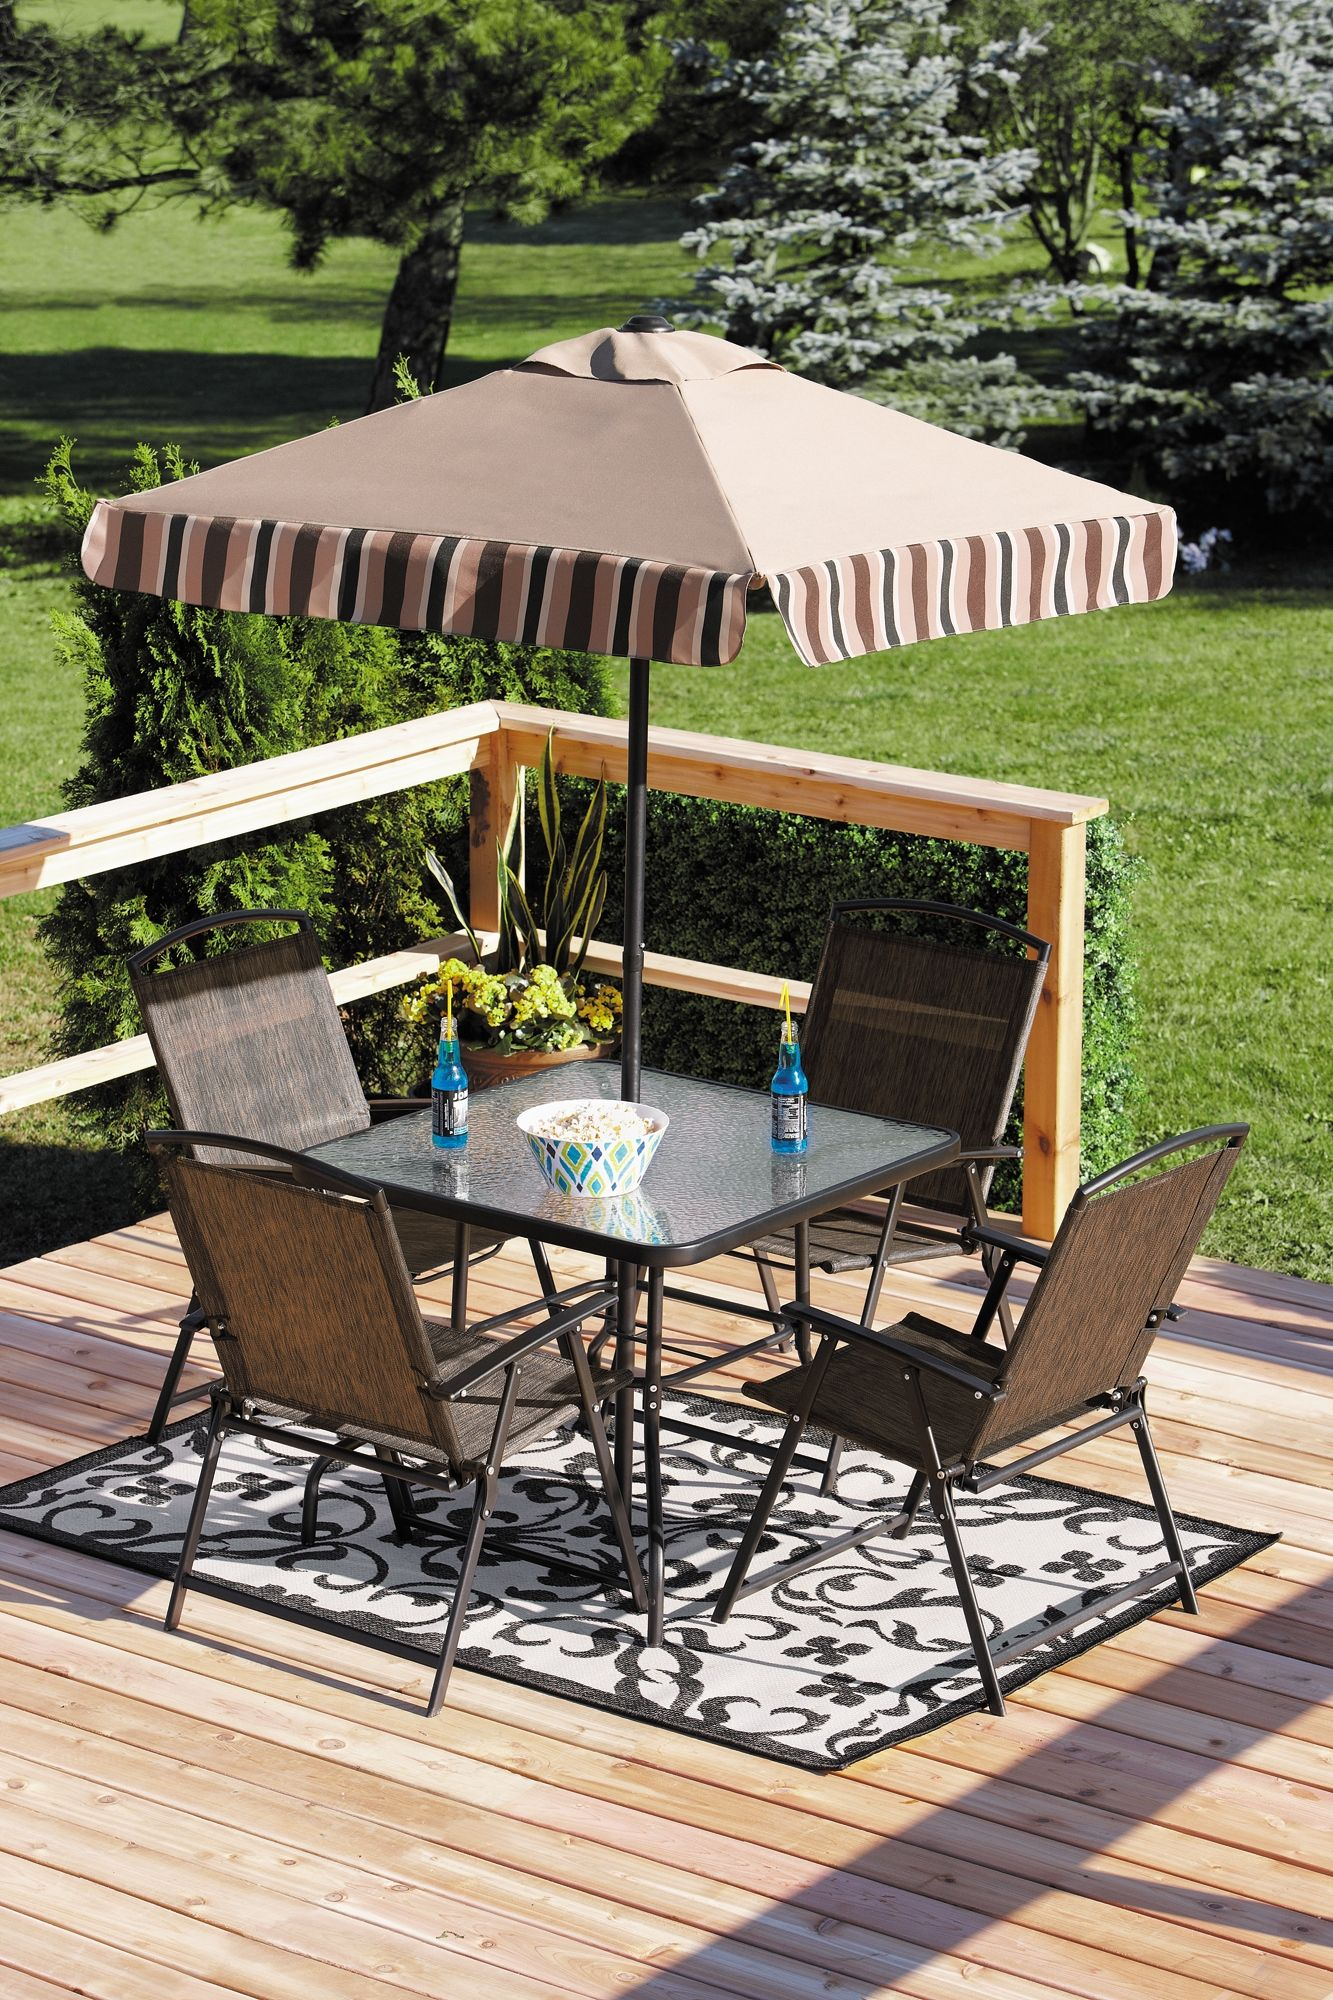 Walmart s cheap set of garden furniture that i d like for our